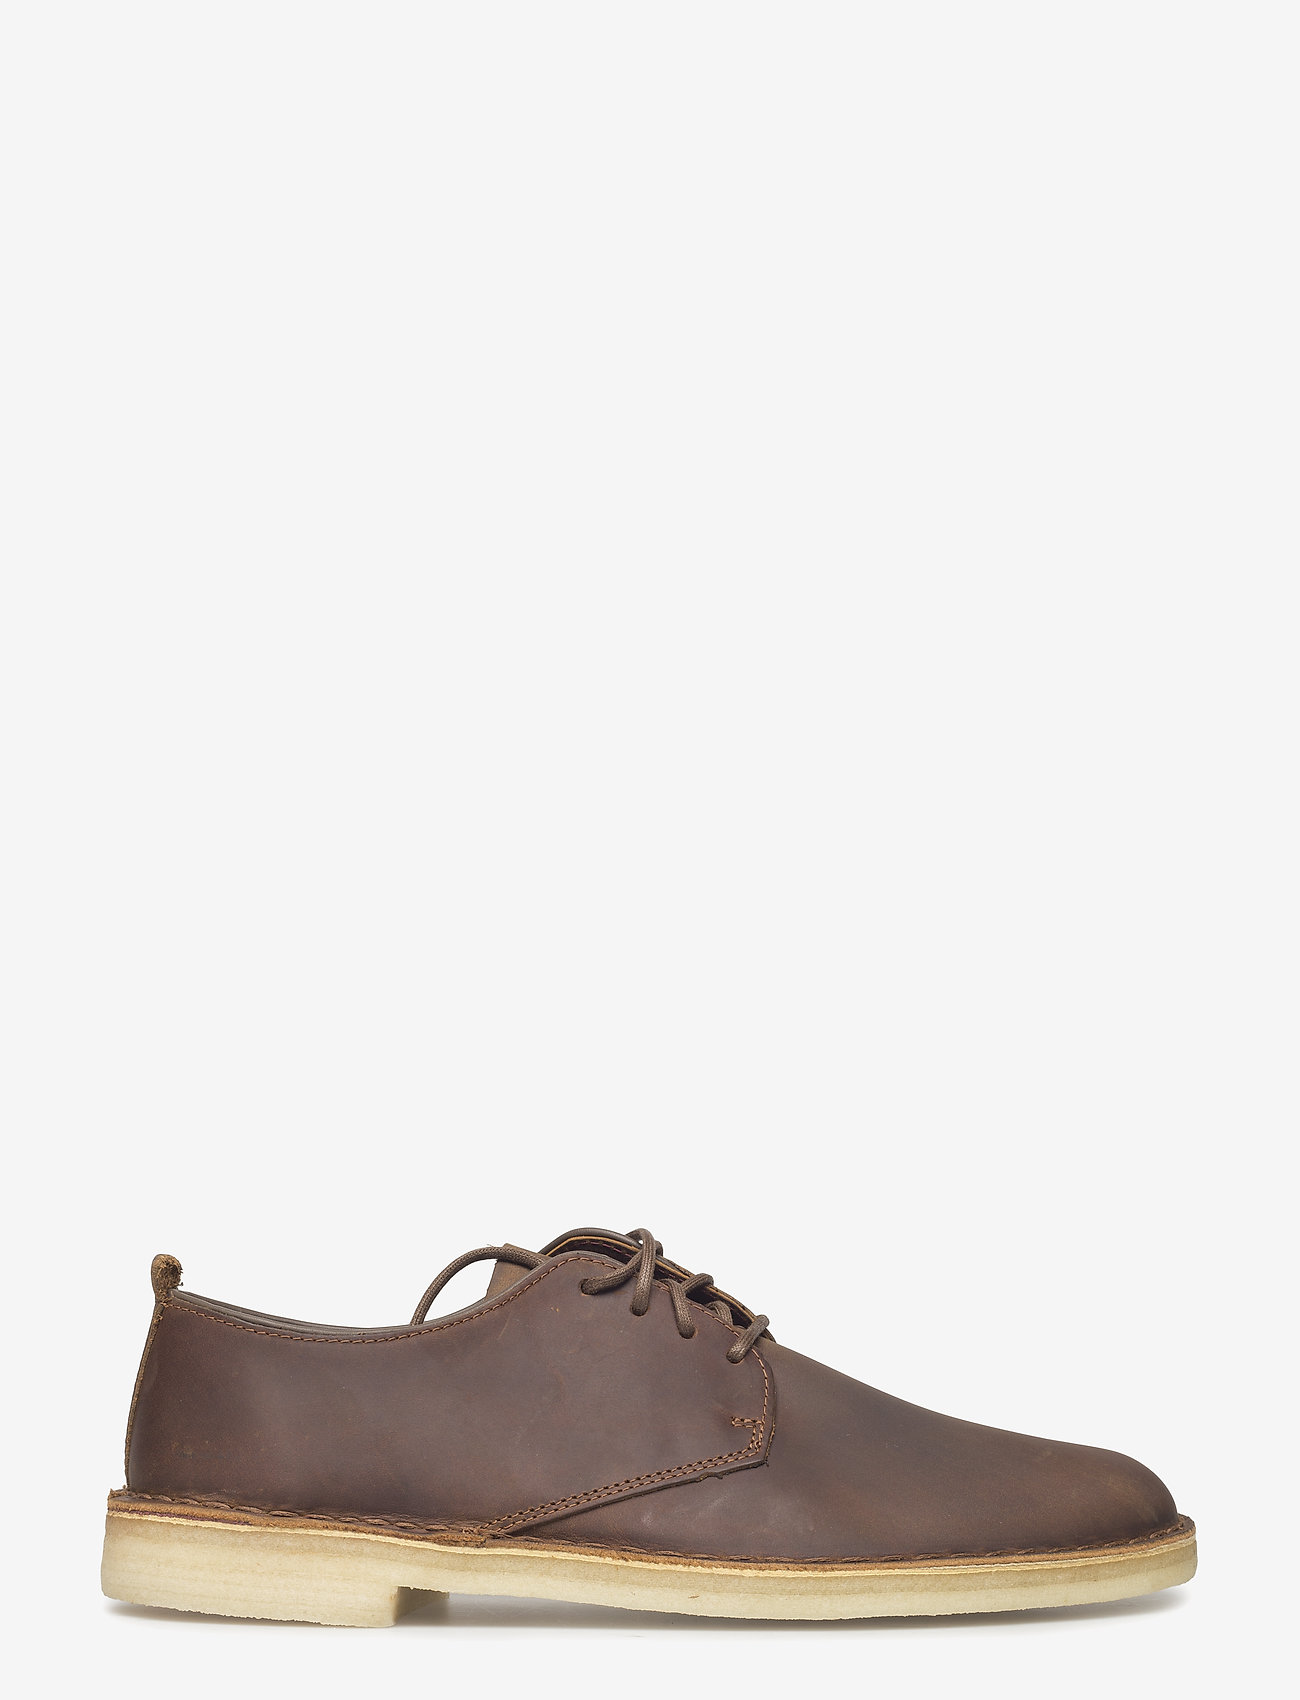 Clarks Originals - Desert London - desert boots - beeswax - 1